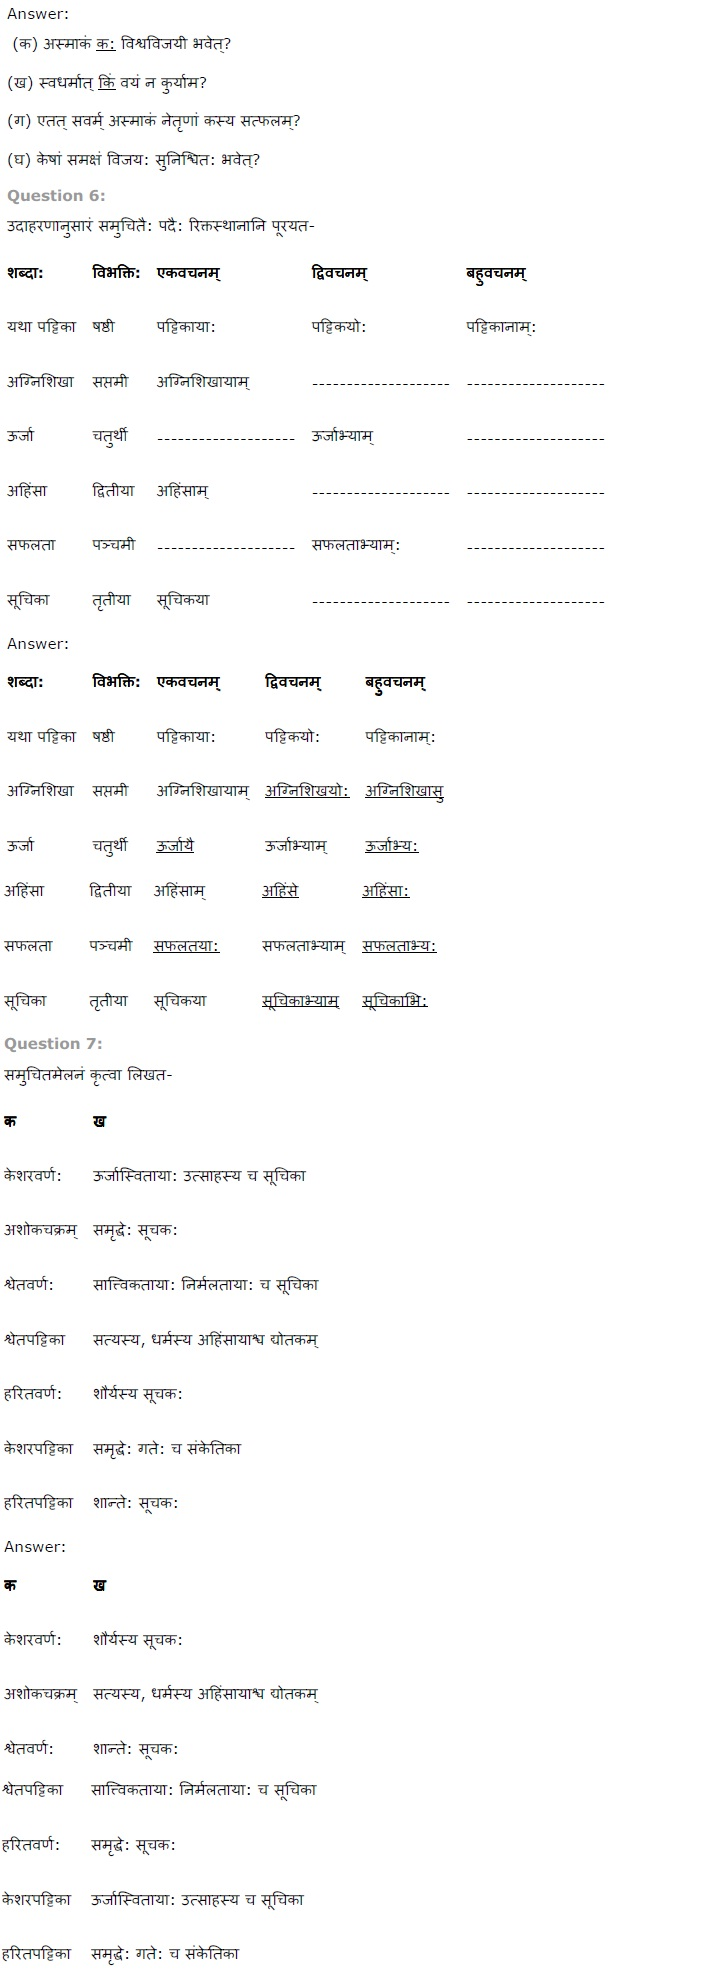 NCERT Solutions for Class 7 Sanskrit Ruchira for Chapter 8 त्रिवर्ण ध्वज